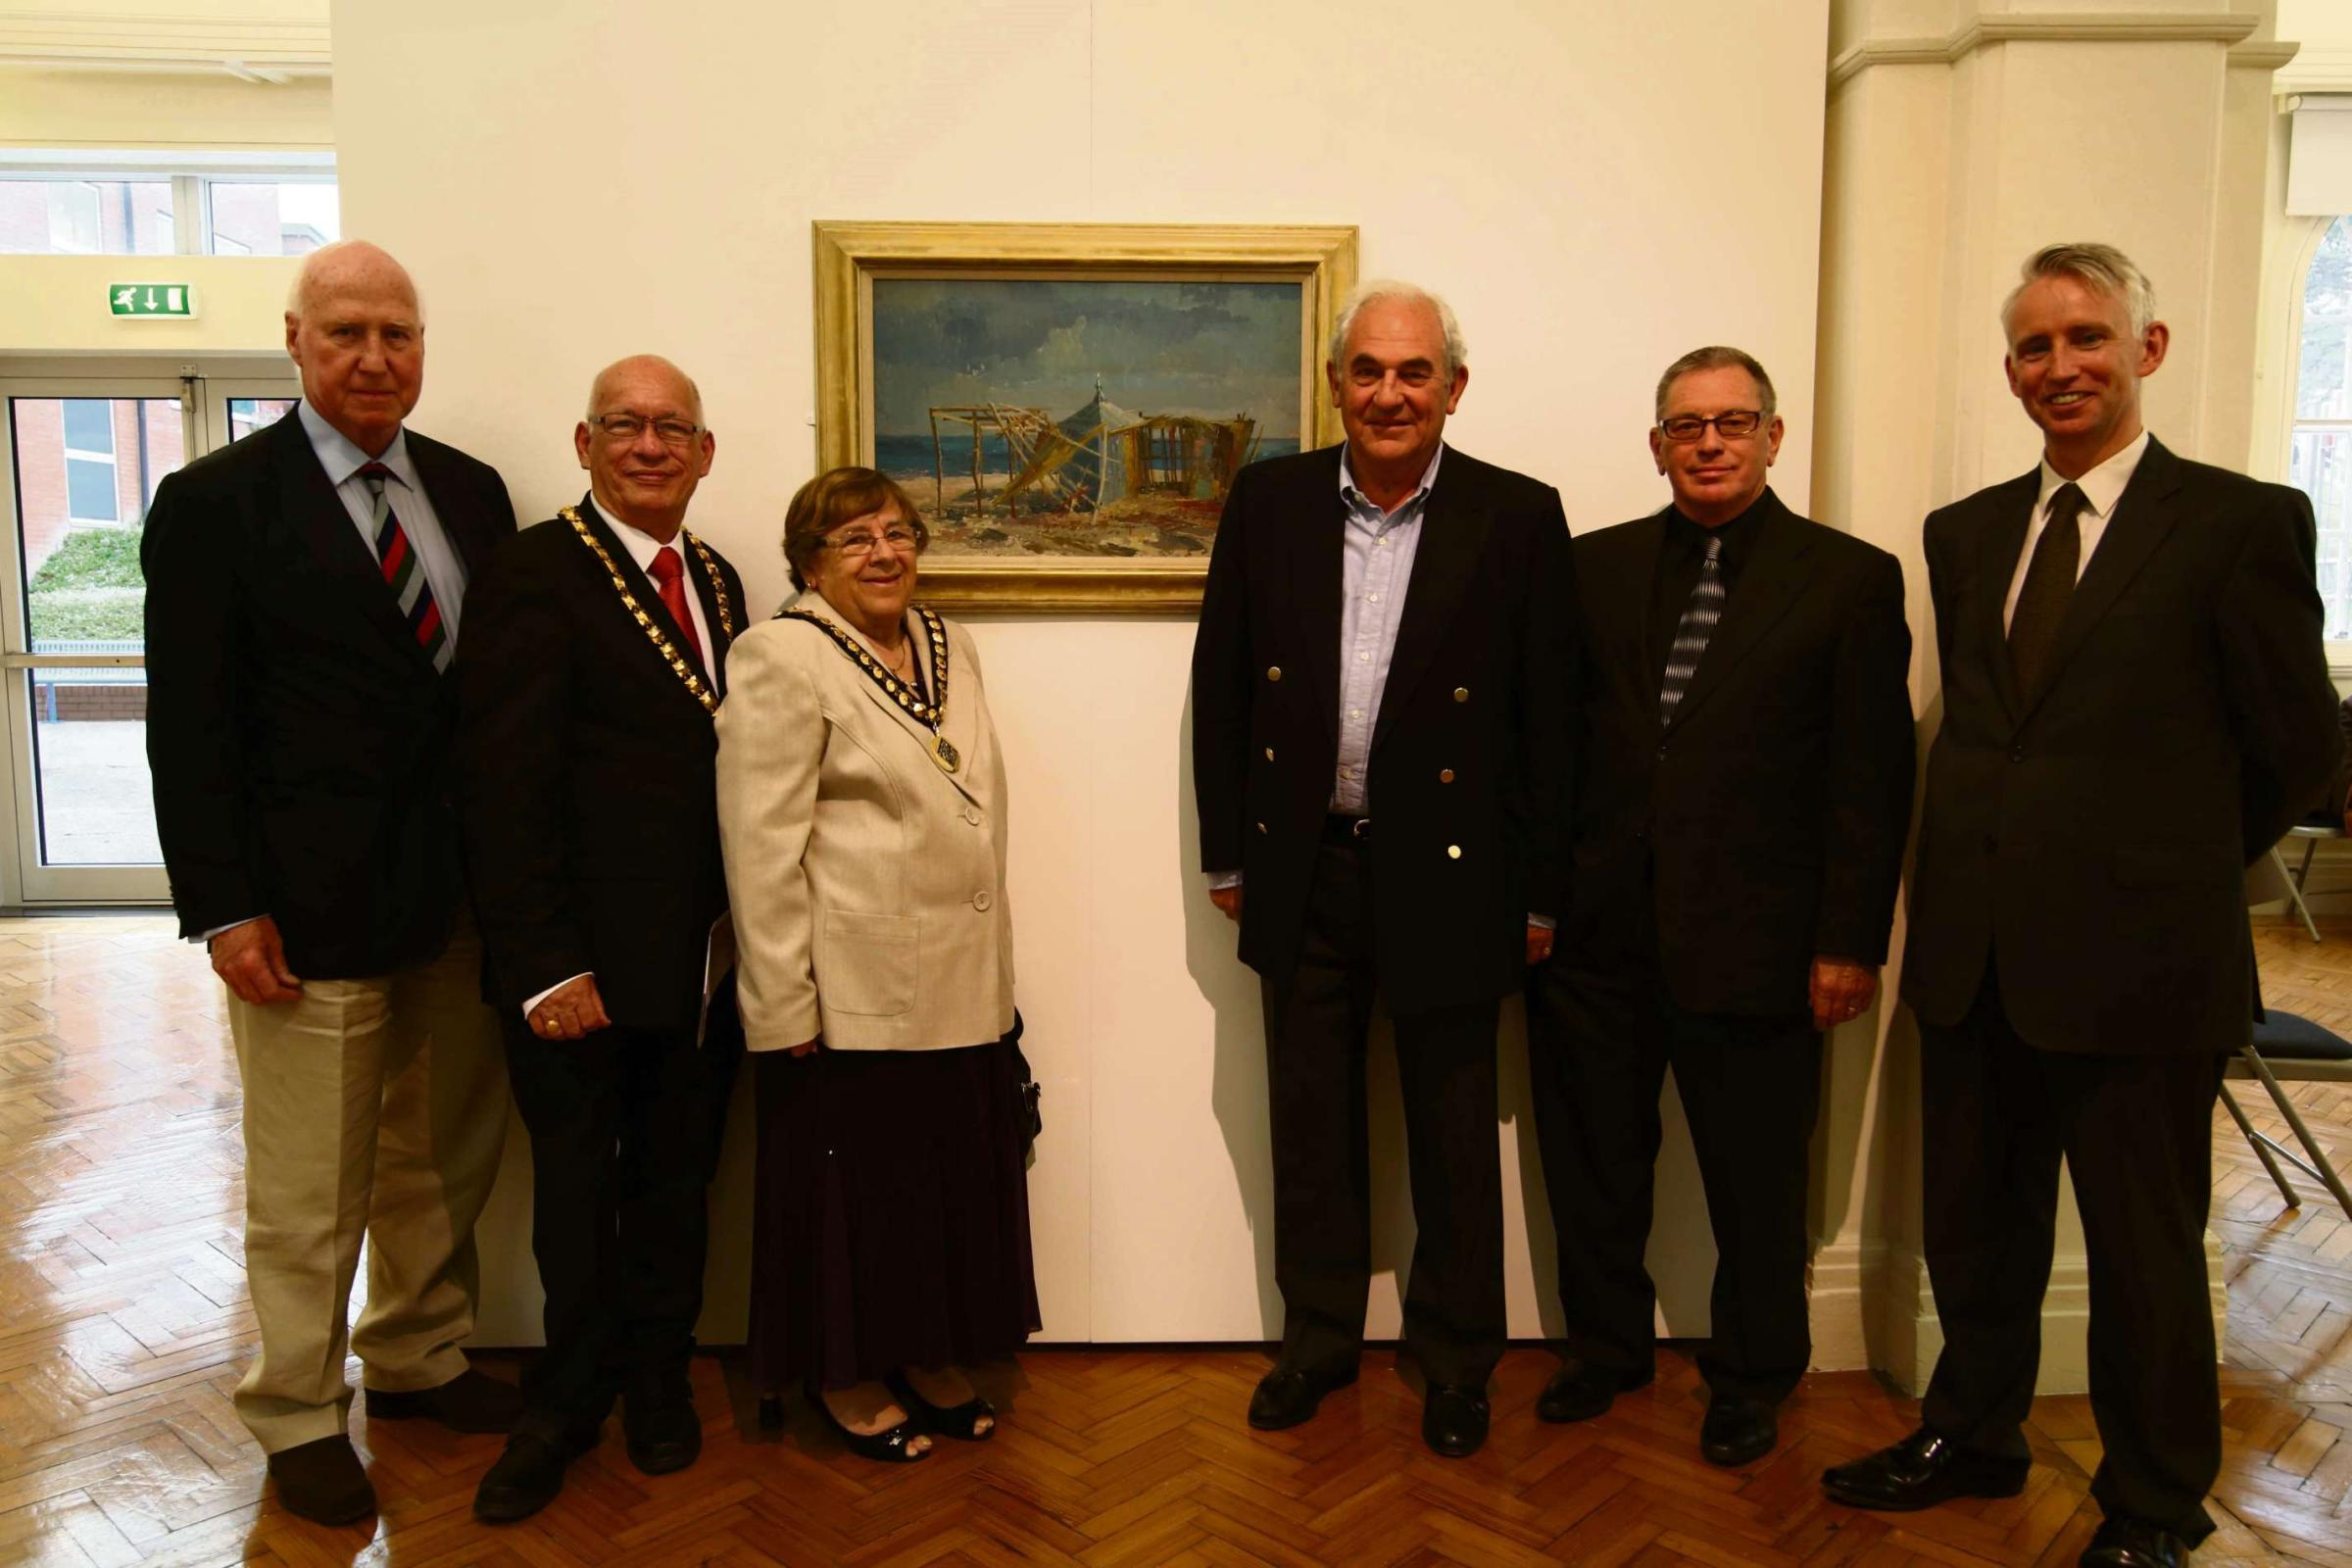 EXHIBIT: Dr Peter Beck, Mayor Howard Hamilton, Mayoress Carole Hamilton, Nigel Howard - Jones, Professor Tony Curtis and Grahame Davies